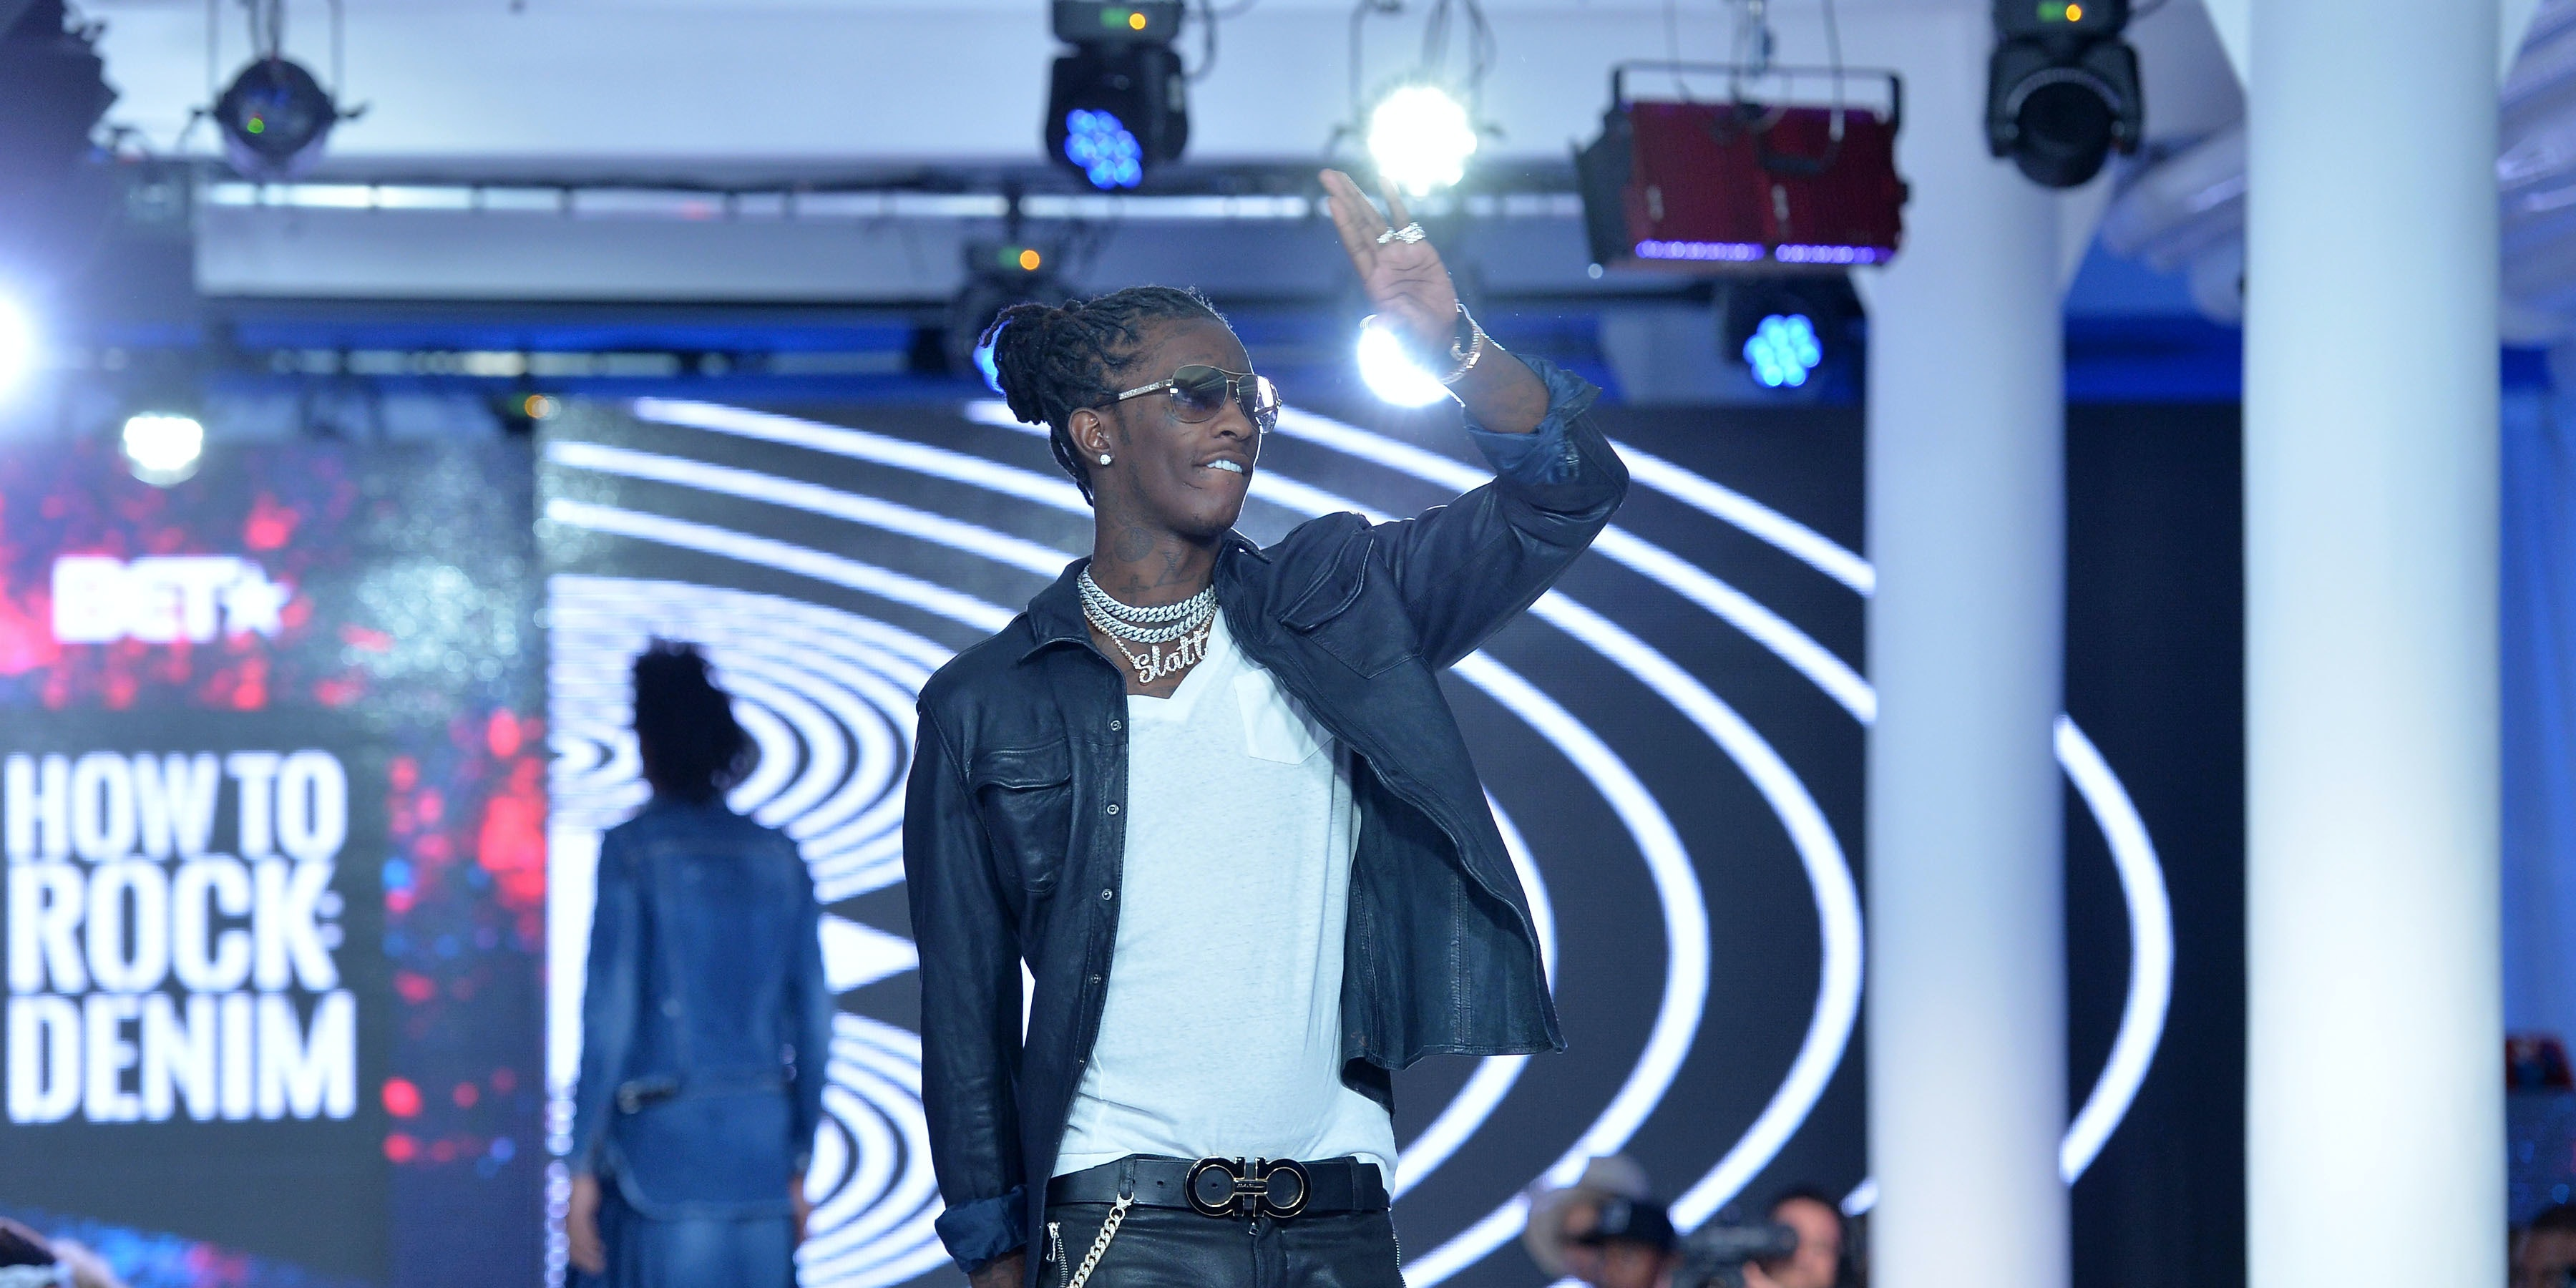 Young Thug at the BET How to Rock Denim show